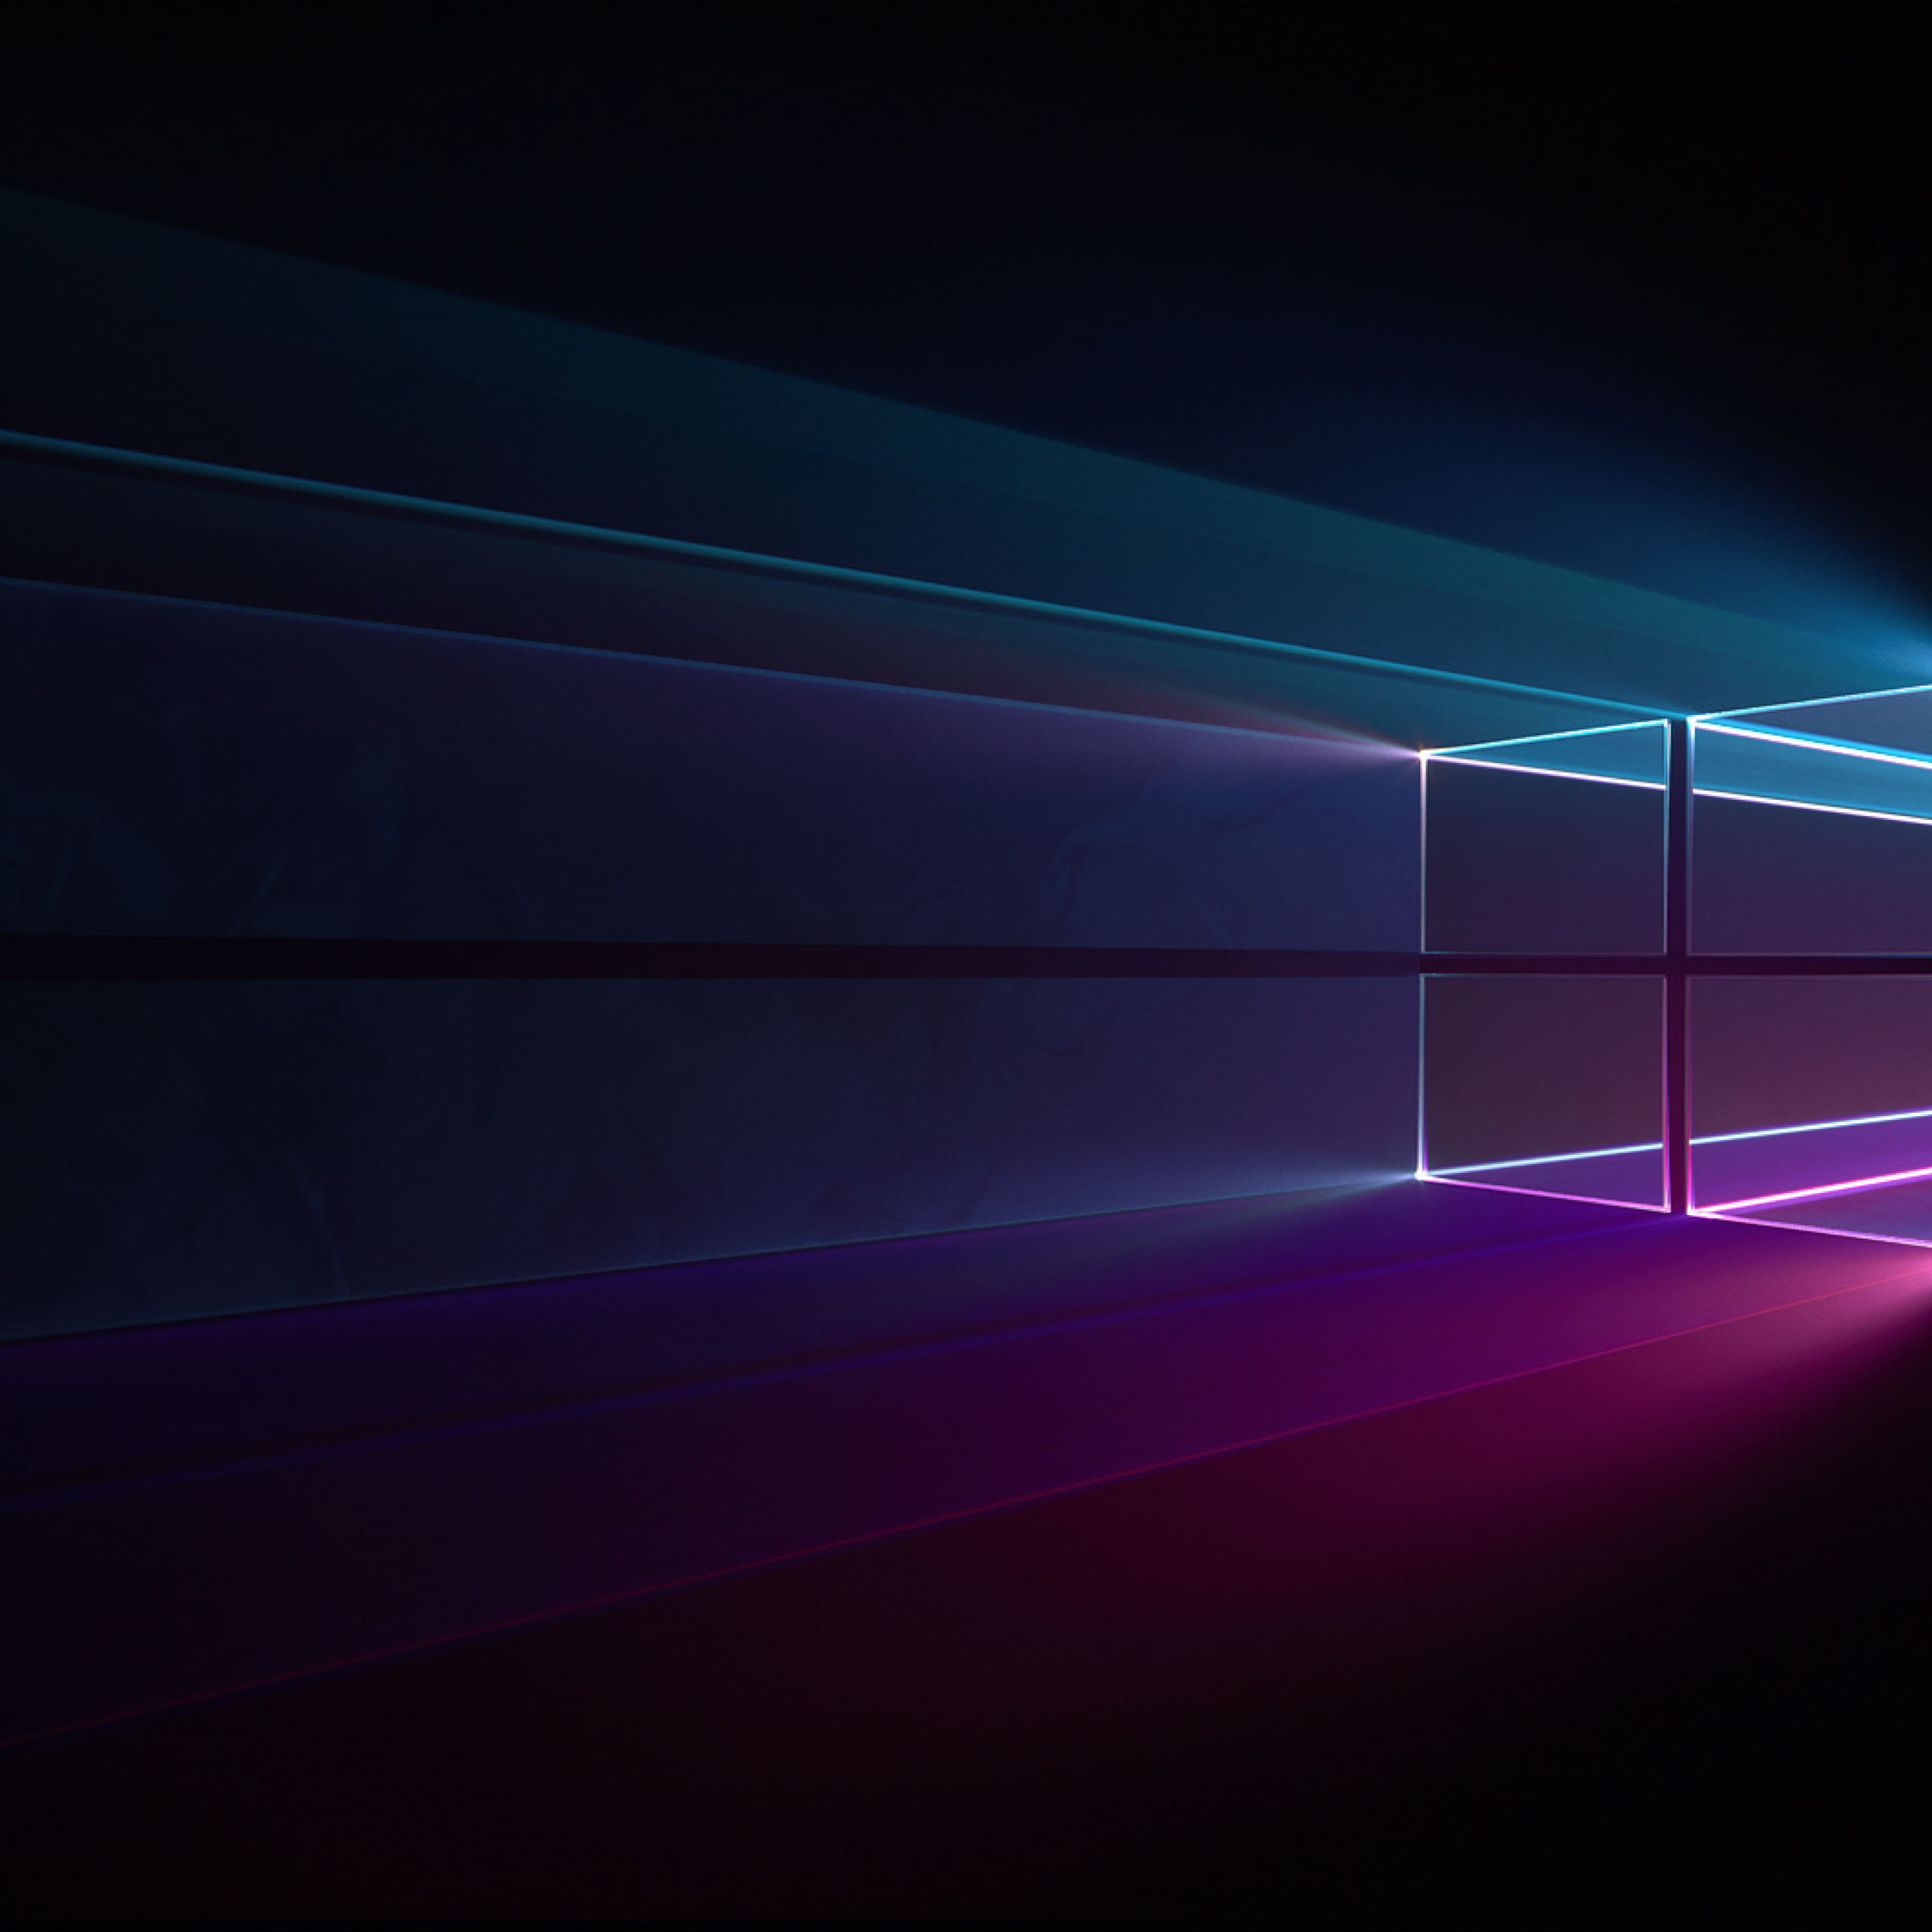 Windows 10 Wallpaper 4k Posted By Samantha Peltier